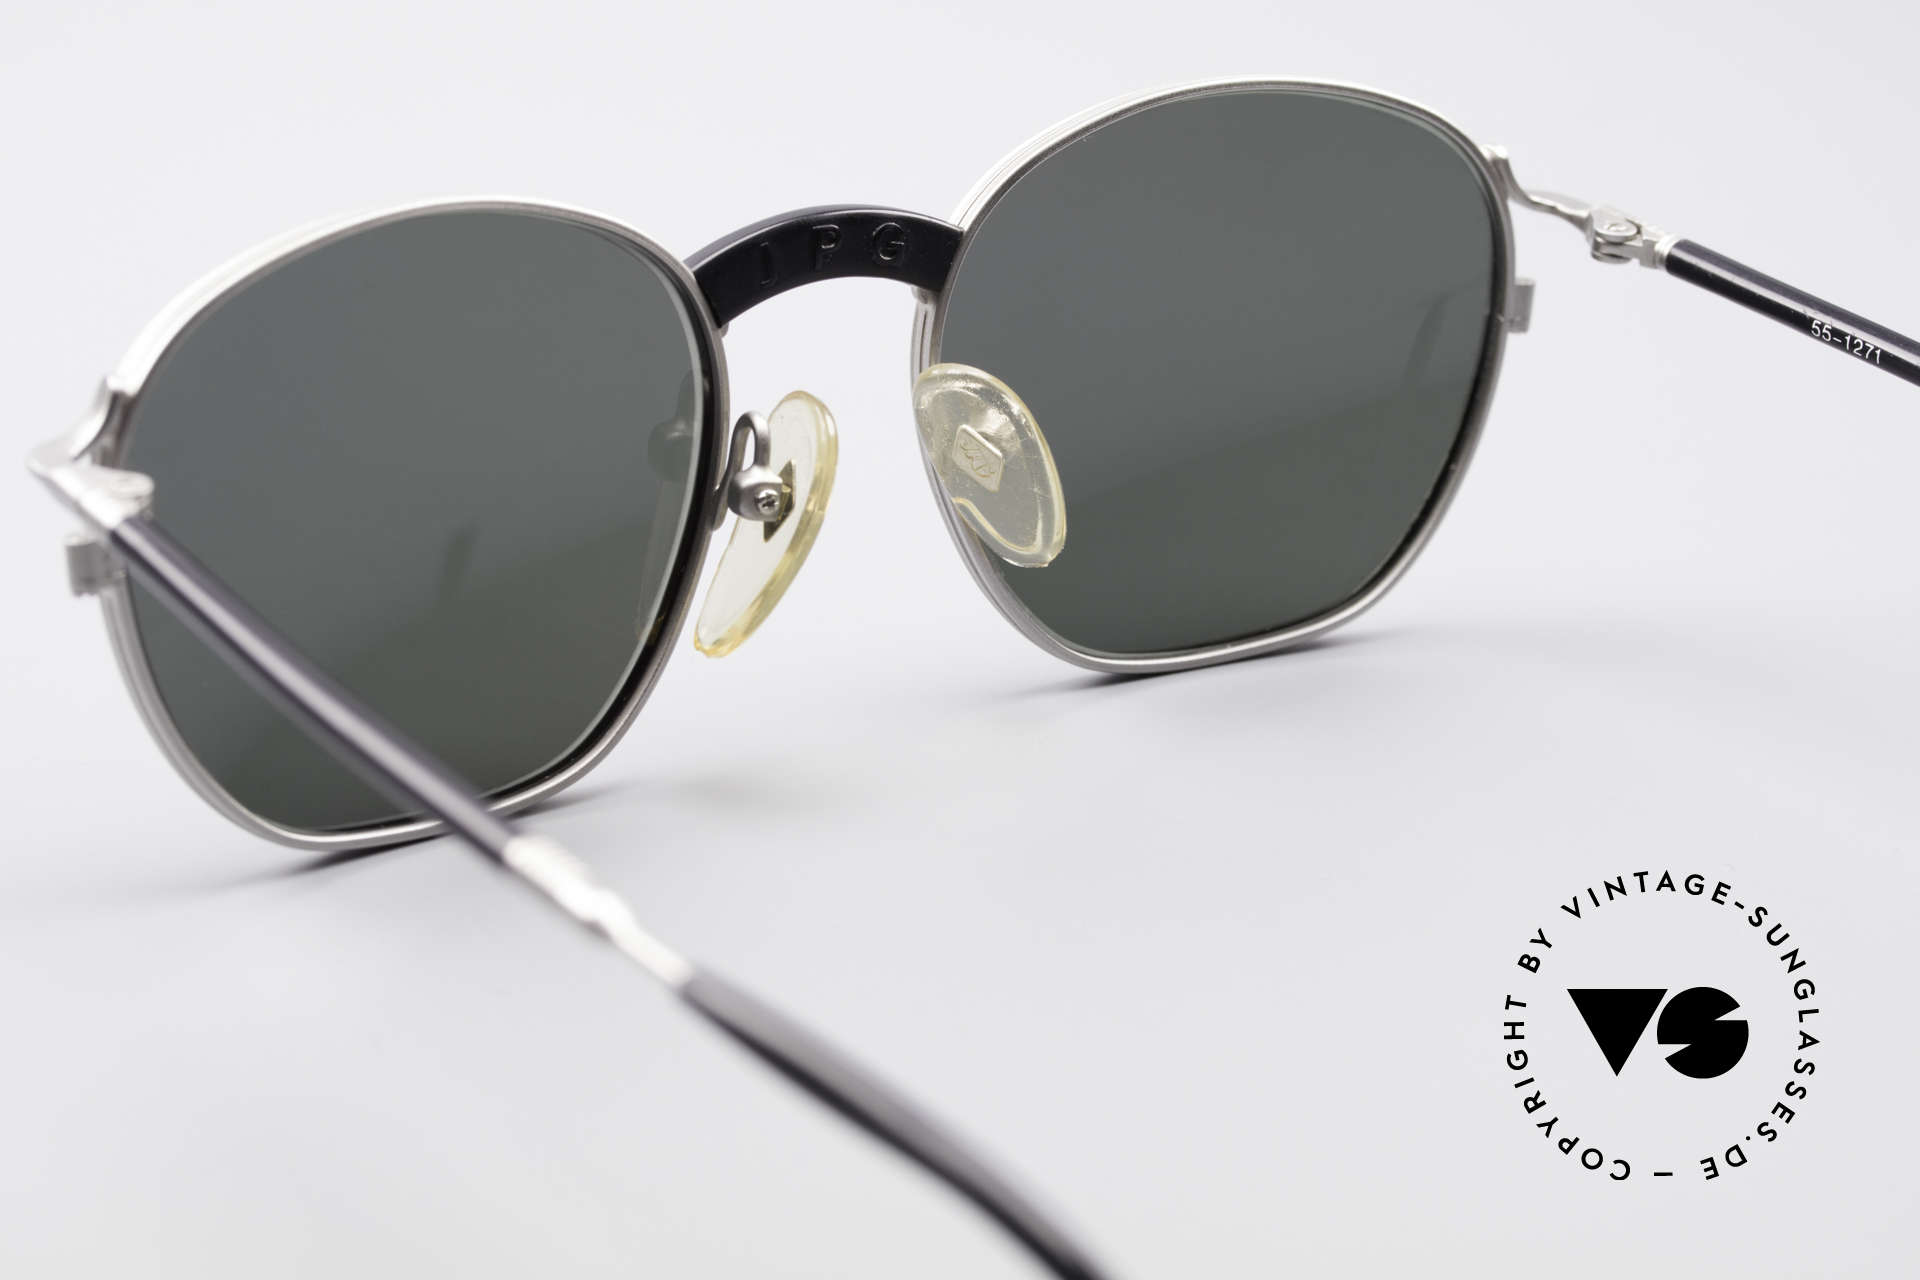 Jean Paul Gaultier 55-1271 Rare Vintage Sunglasses, NO RETRO SHADES, but a rare 25 years old ORIGINAL, Made for Men and Women